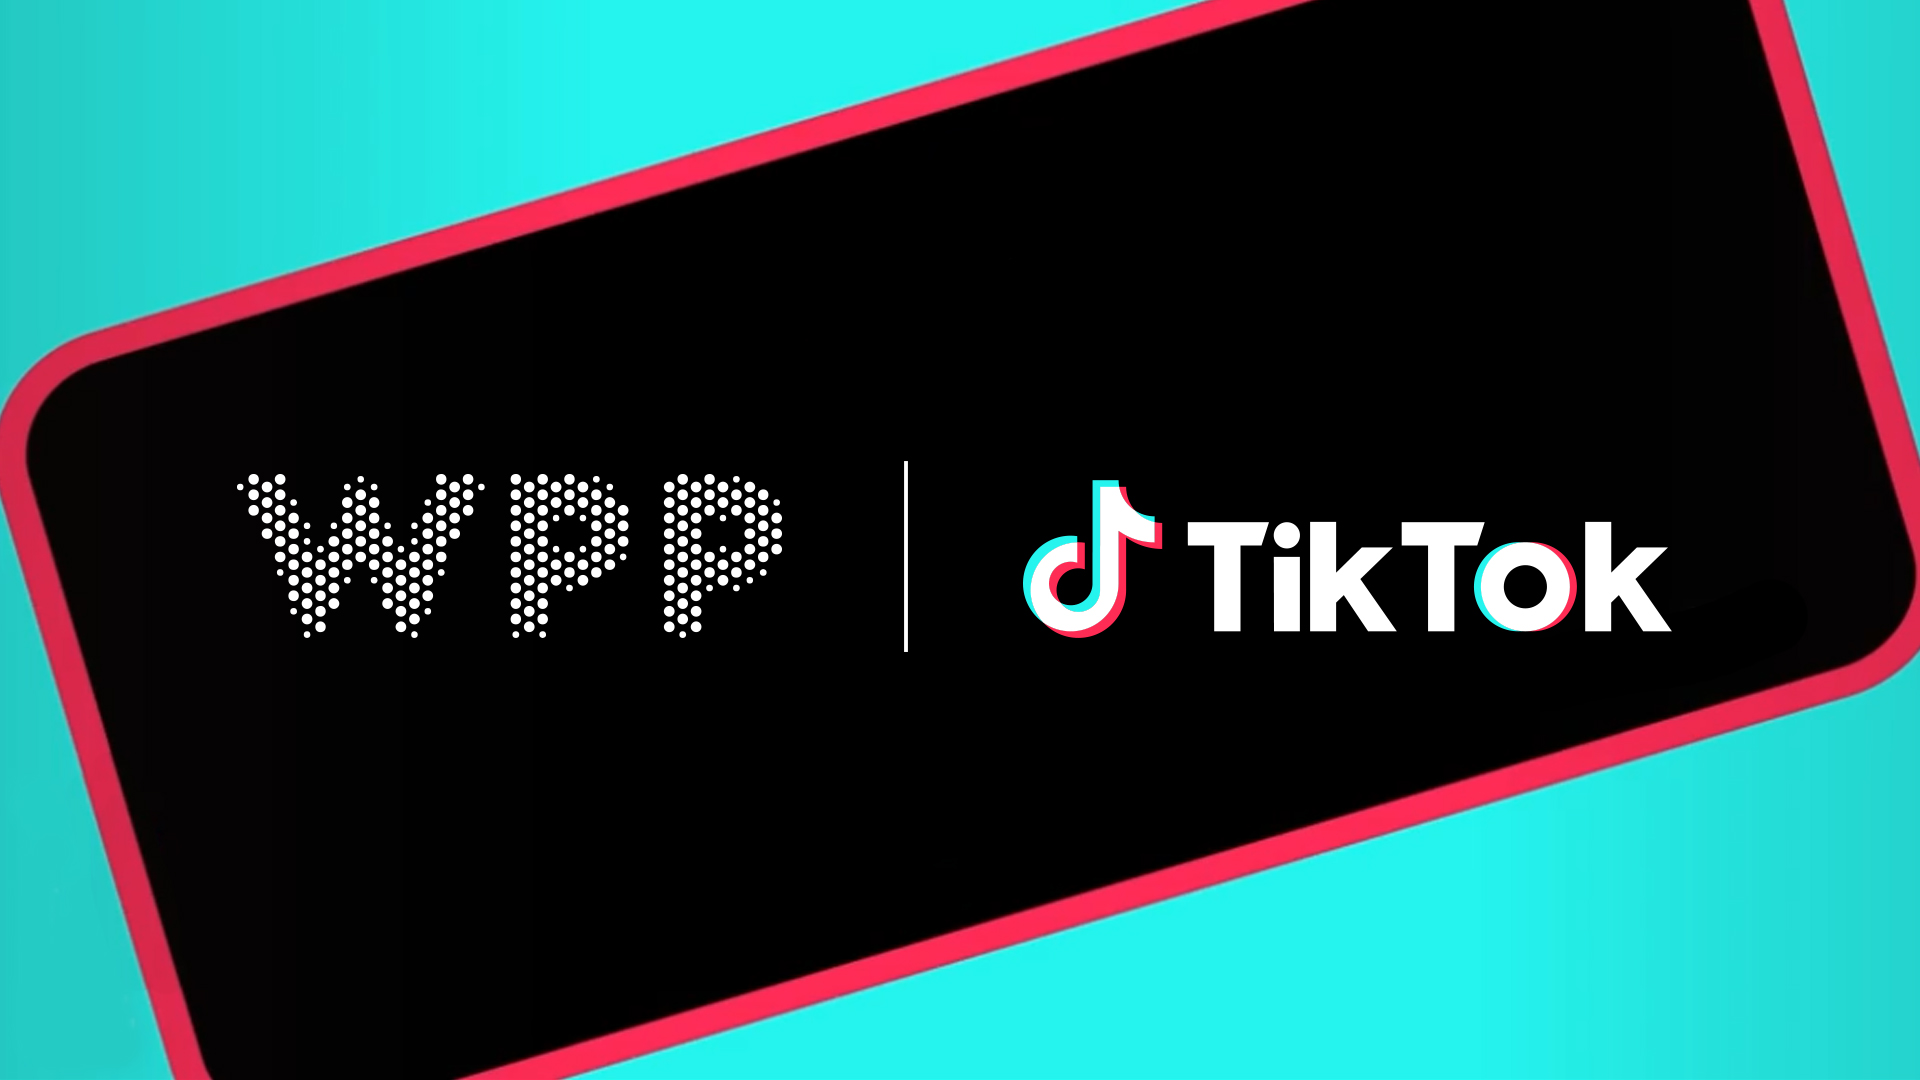 WPP and TikTok announce first-of-its-kind global agency partnership Brandspurng